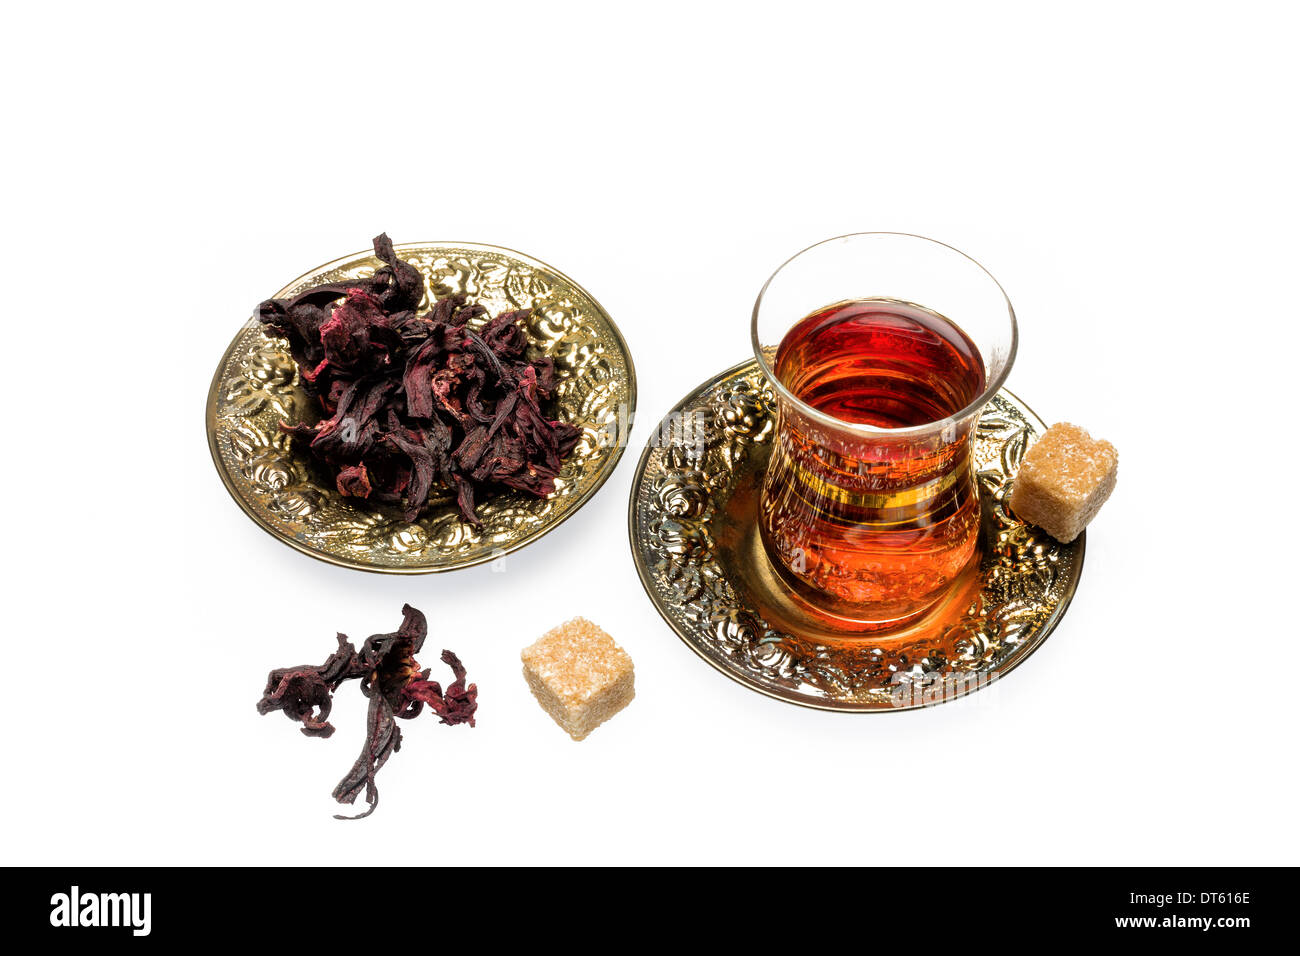 Fragrant and tasty tea from dried hibiscus flowers stock photo fragrant and tasty tea from dried hibiscus flowers izmirmasajfo Images